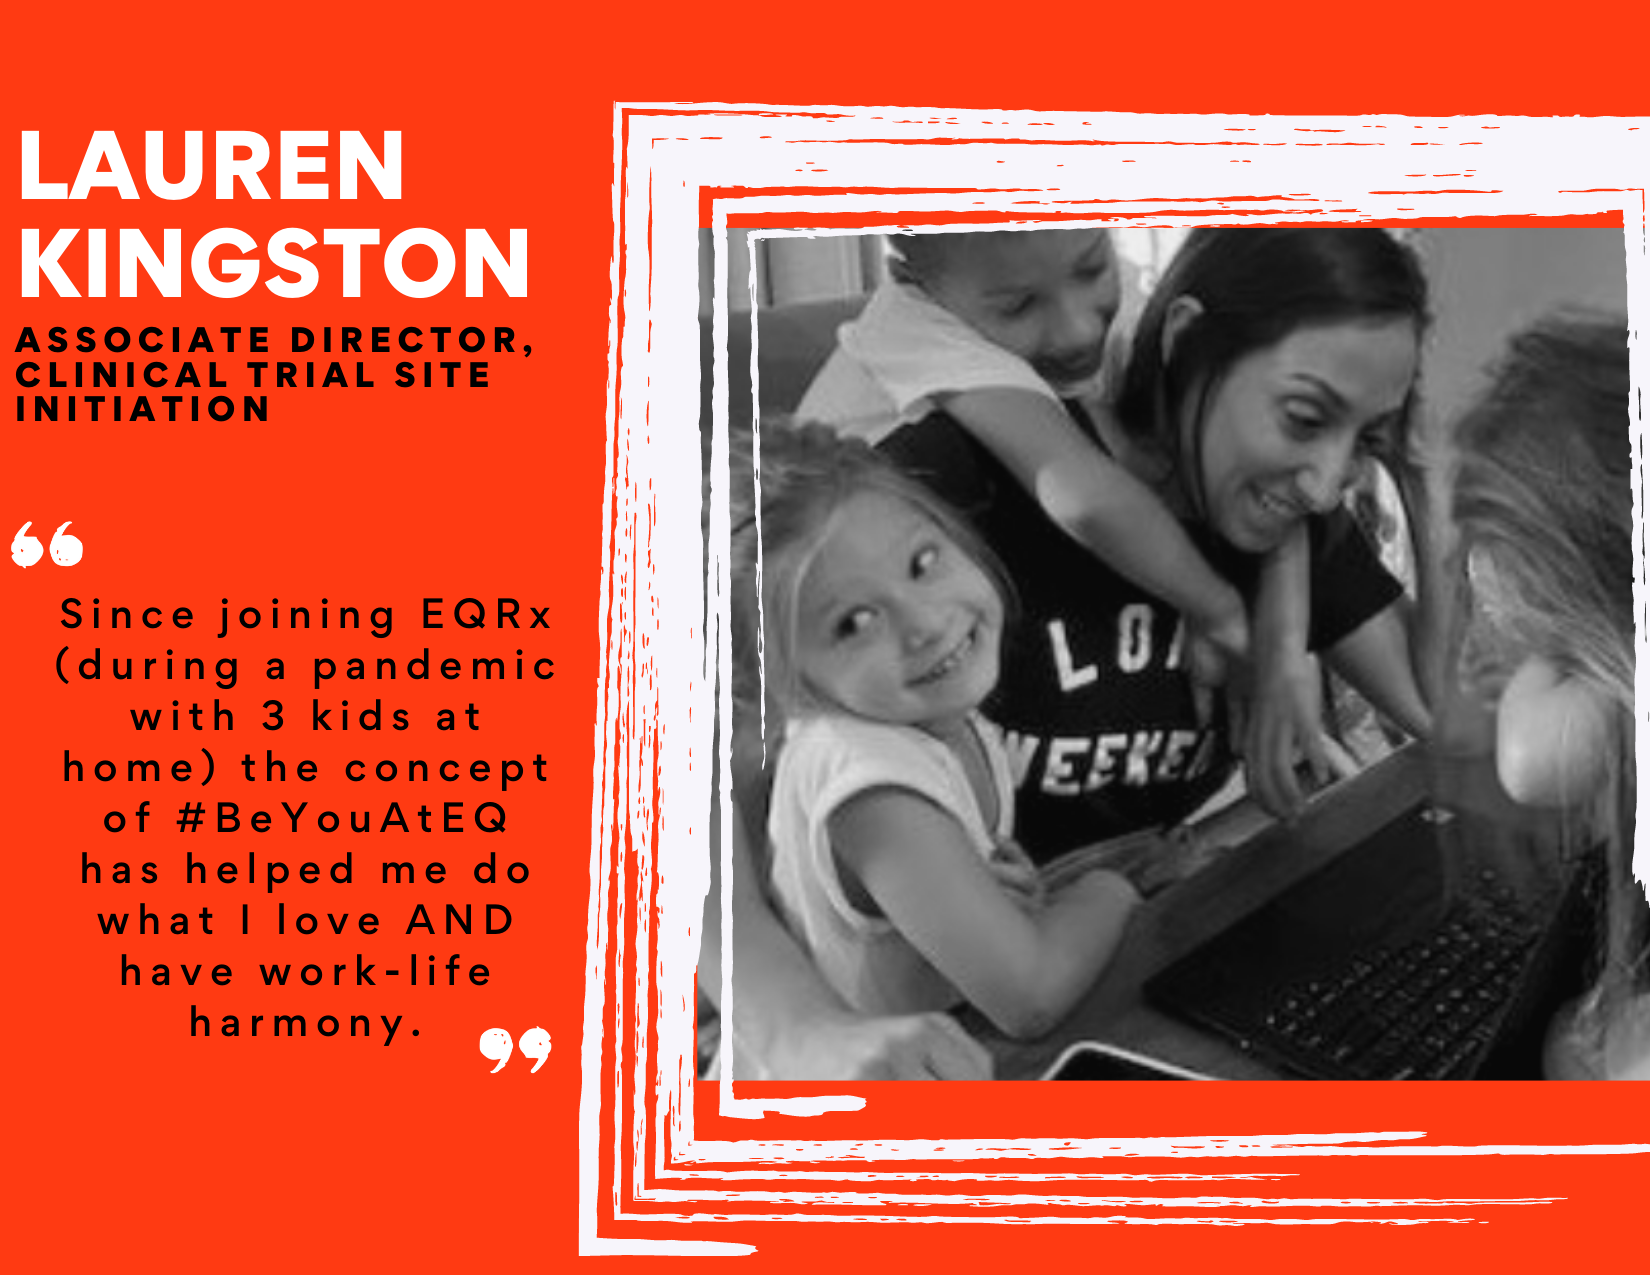 """Image of Lauren Kingston, Associate Director, Clinical Trial Site Initiation at EQRx, working on her laptop with her three kids. Quote: """"Since joining EQRx (during a pandemic with three kids at home) the concept of #BeYouAtEQ has helped me do what I love AND have work-life harmony."""""""